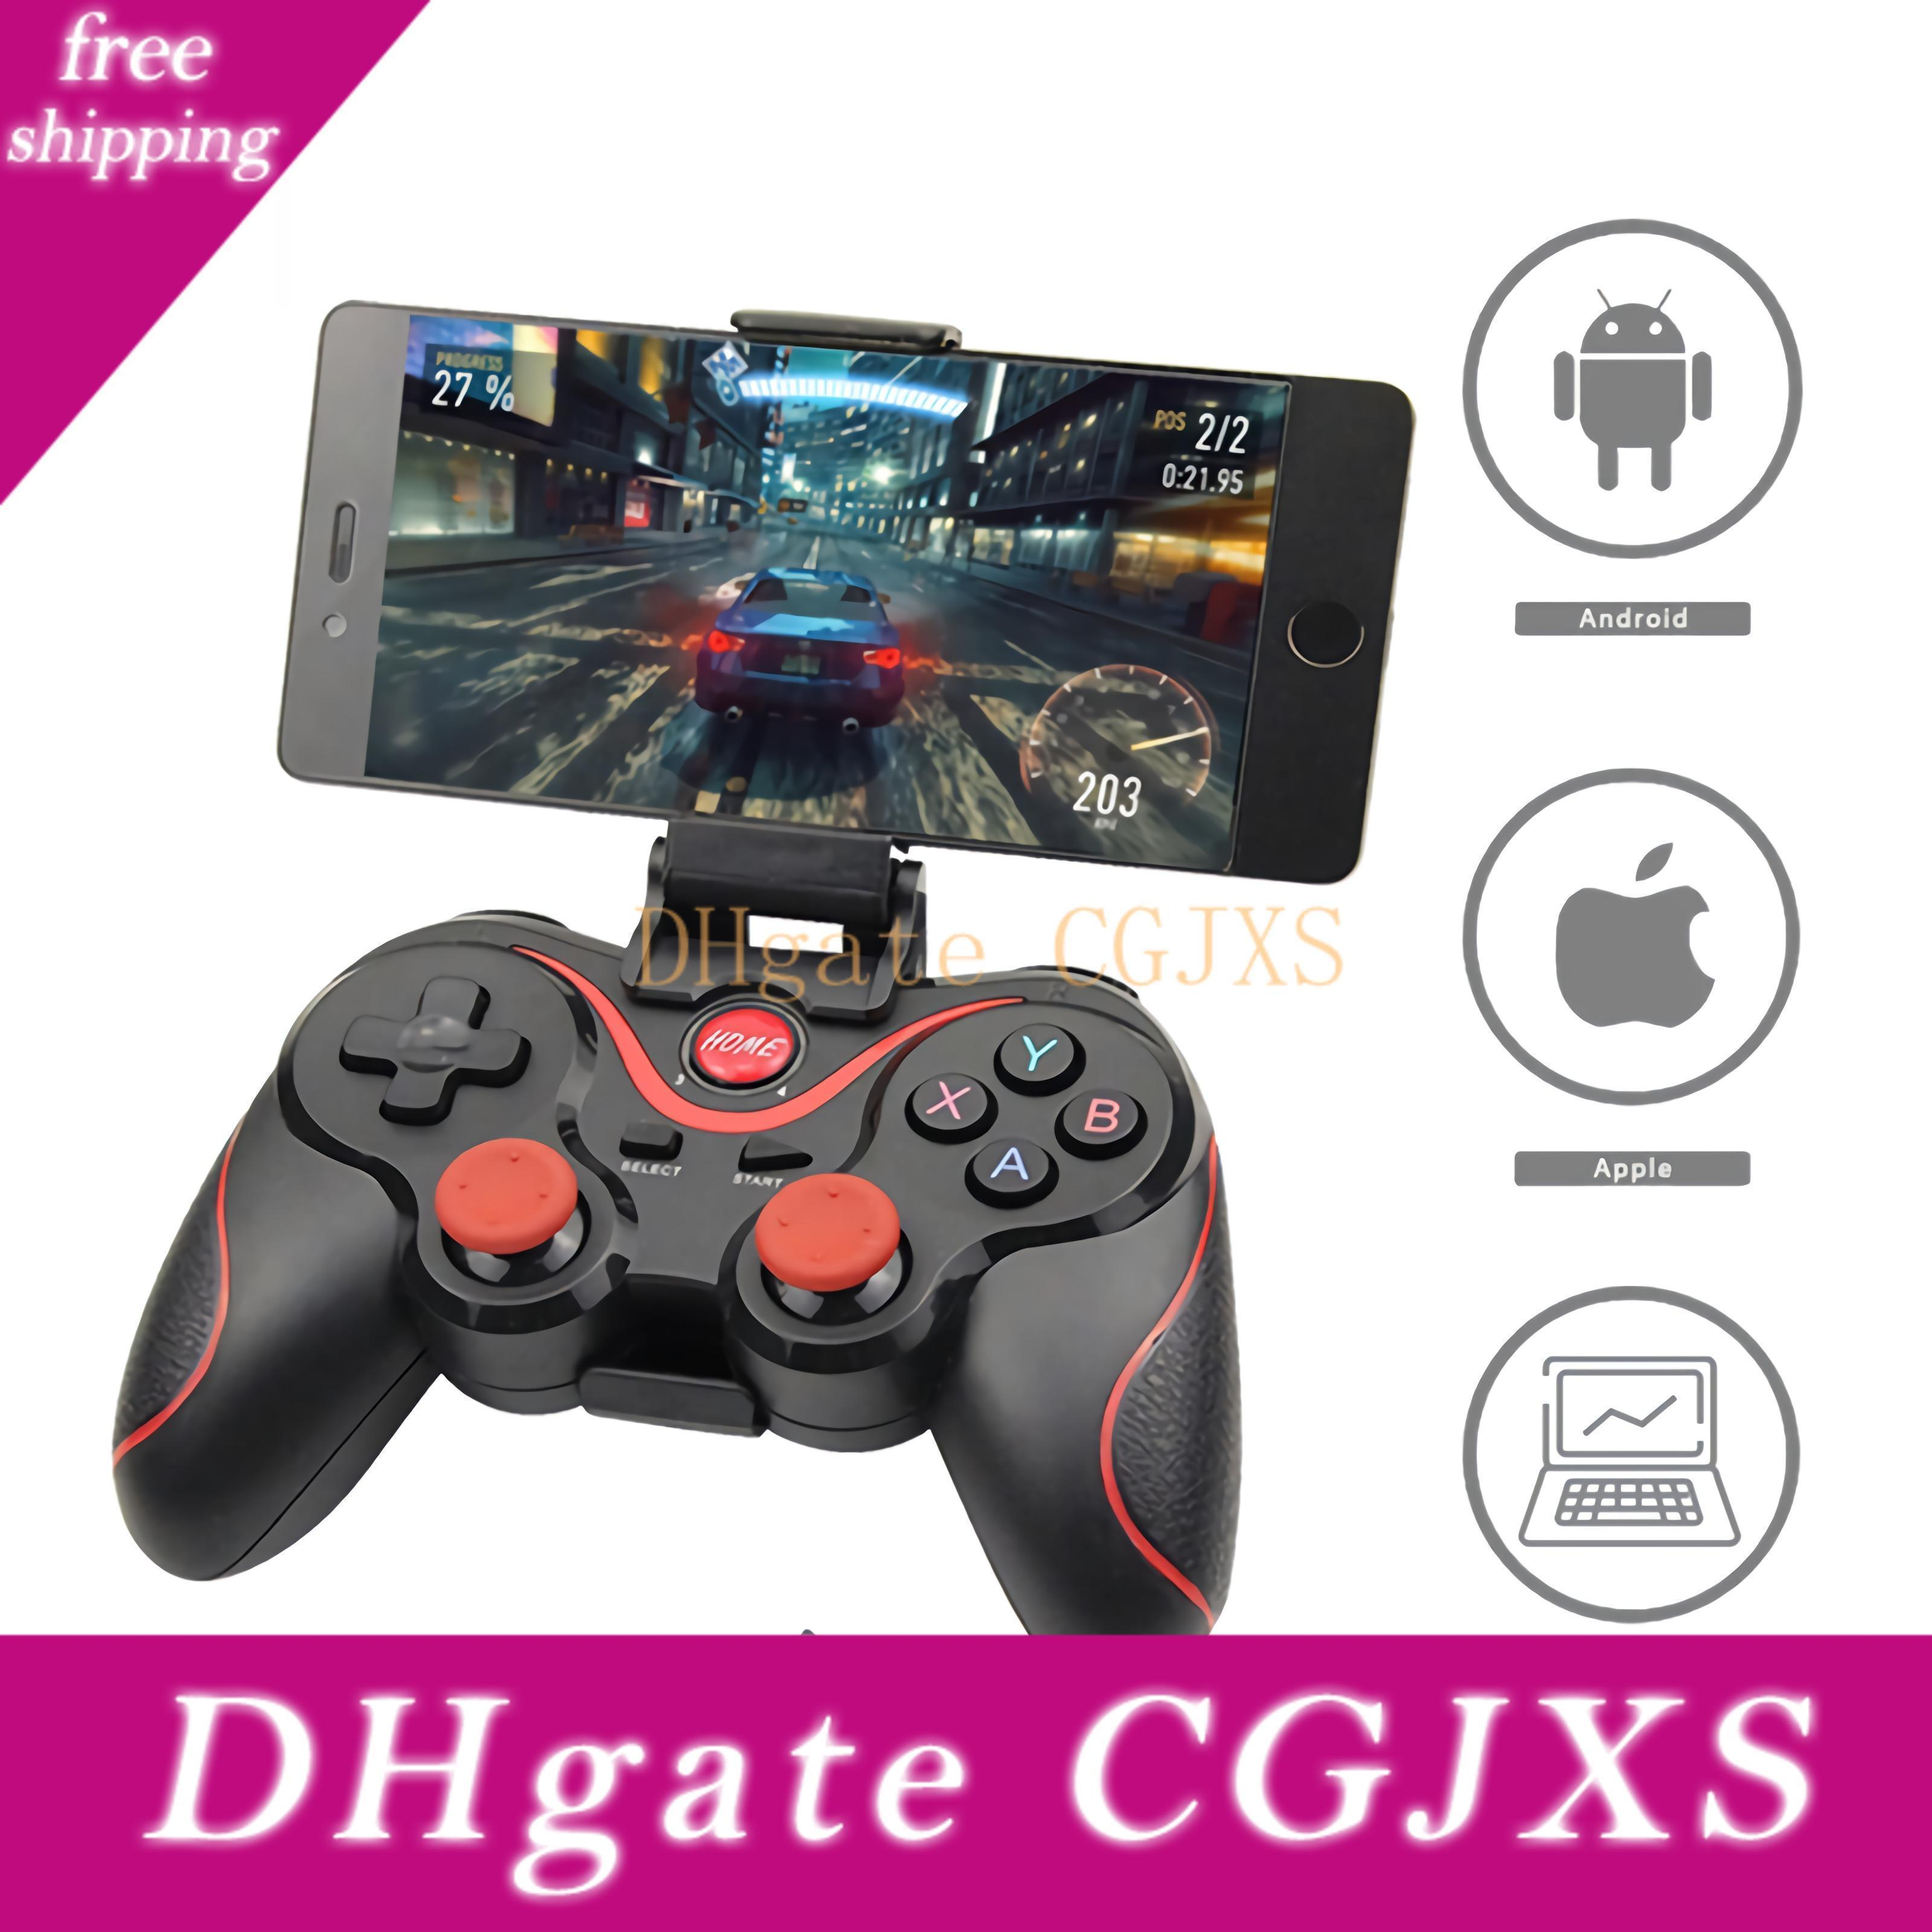 Wholesale Best Ps3 Controller For Single S Day Sales 2020 From Dhgate